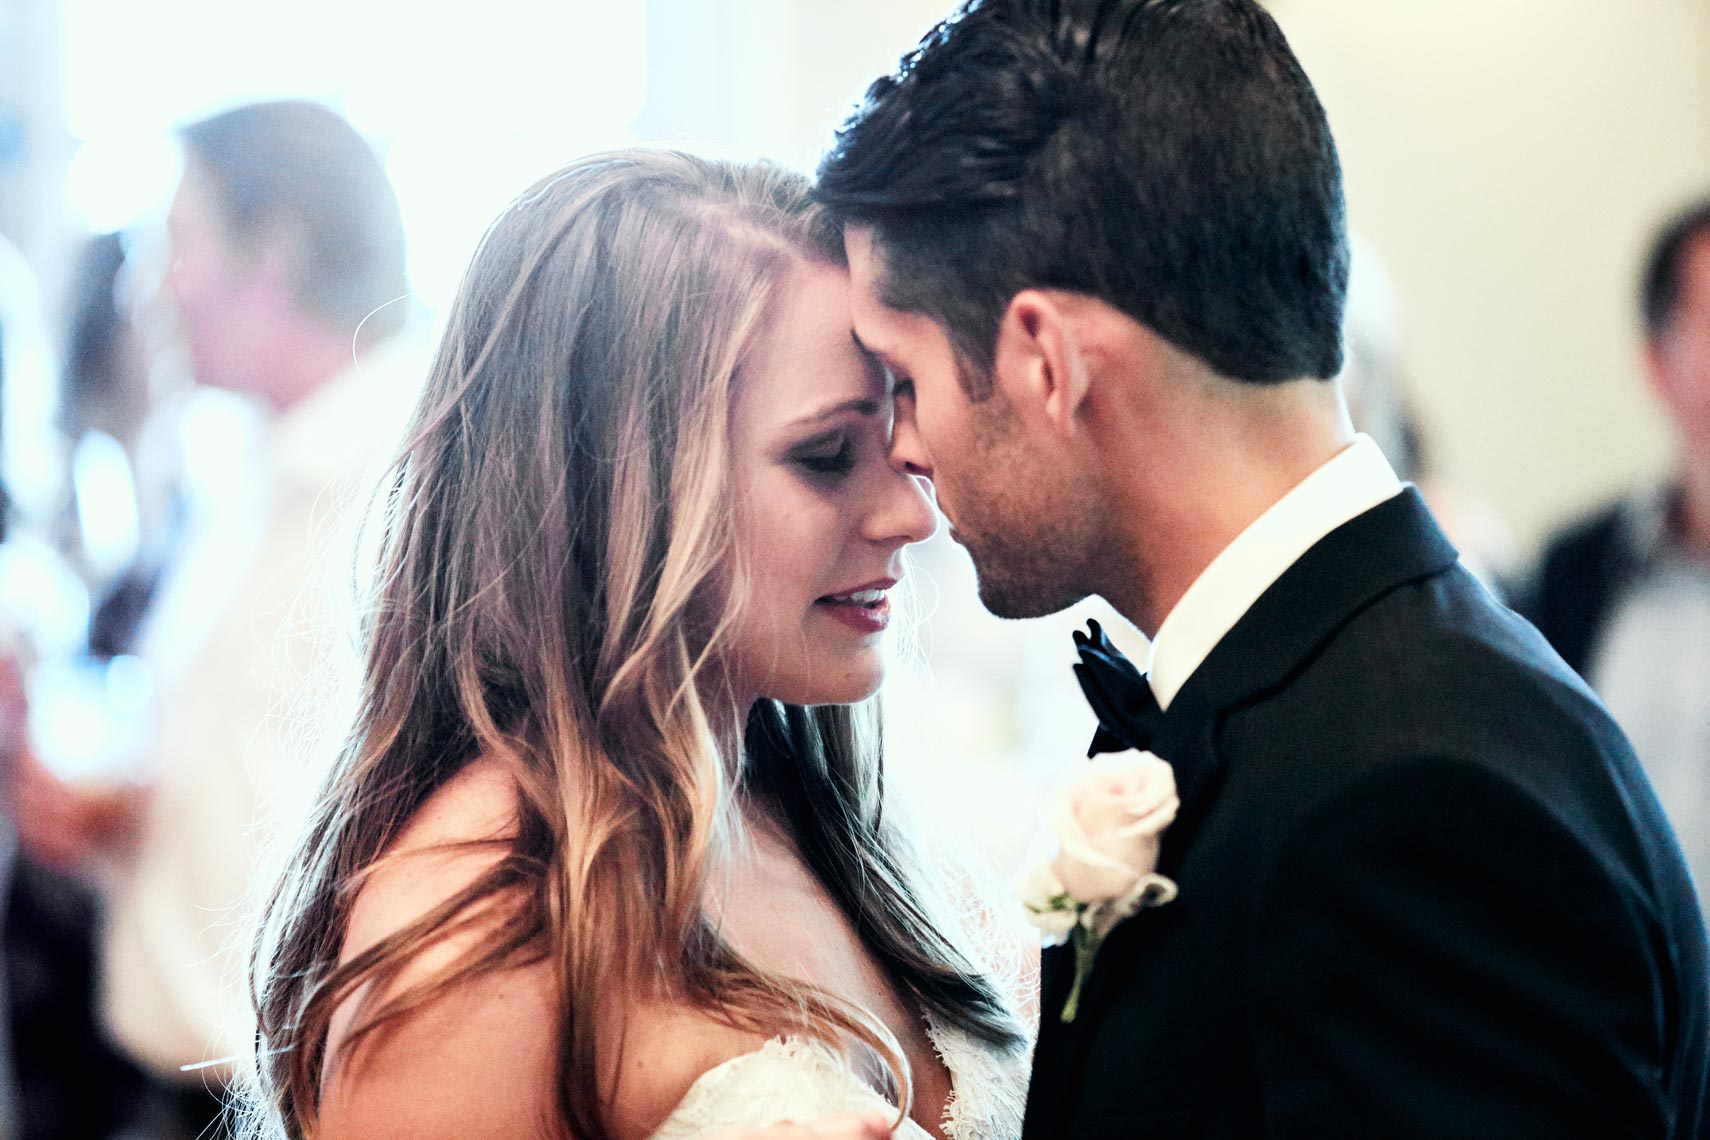 Mainecoastweddingphotography-2-3430